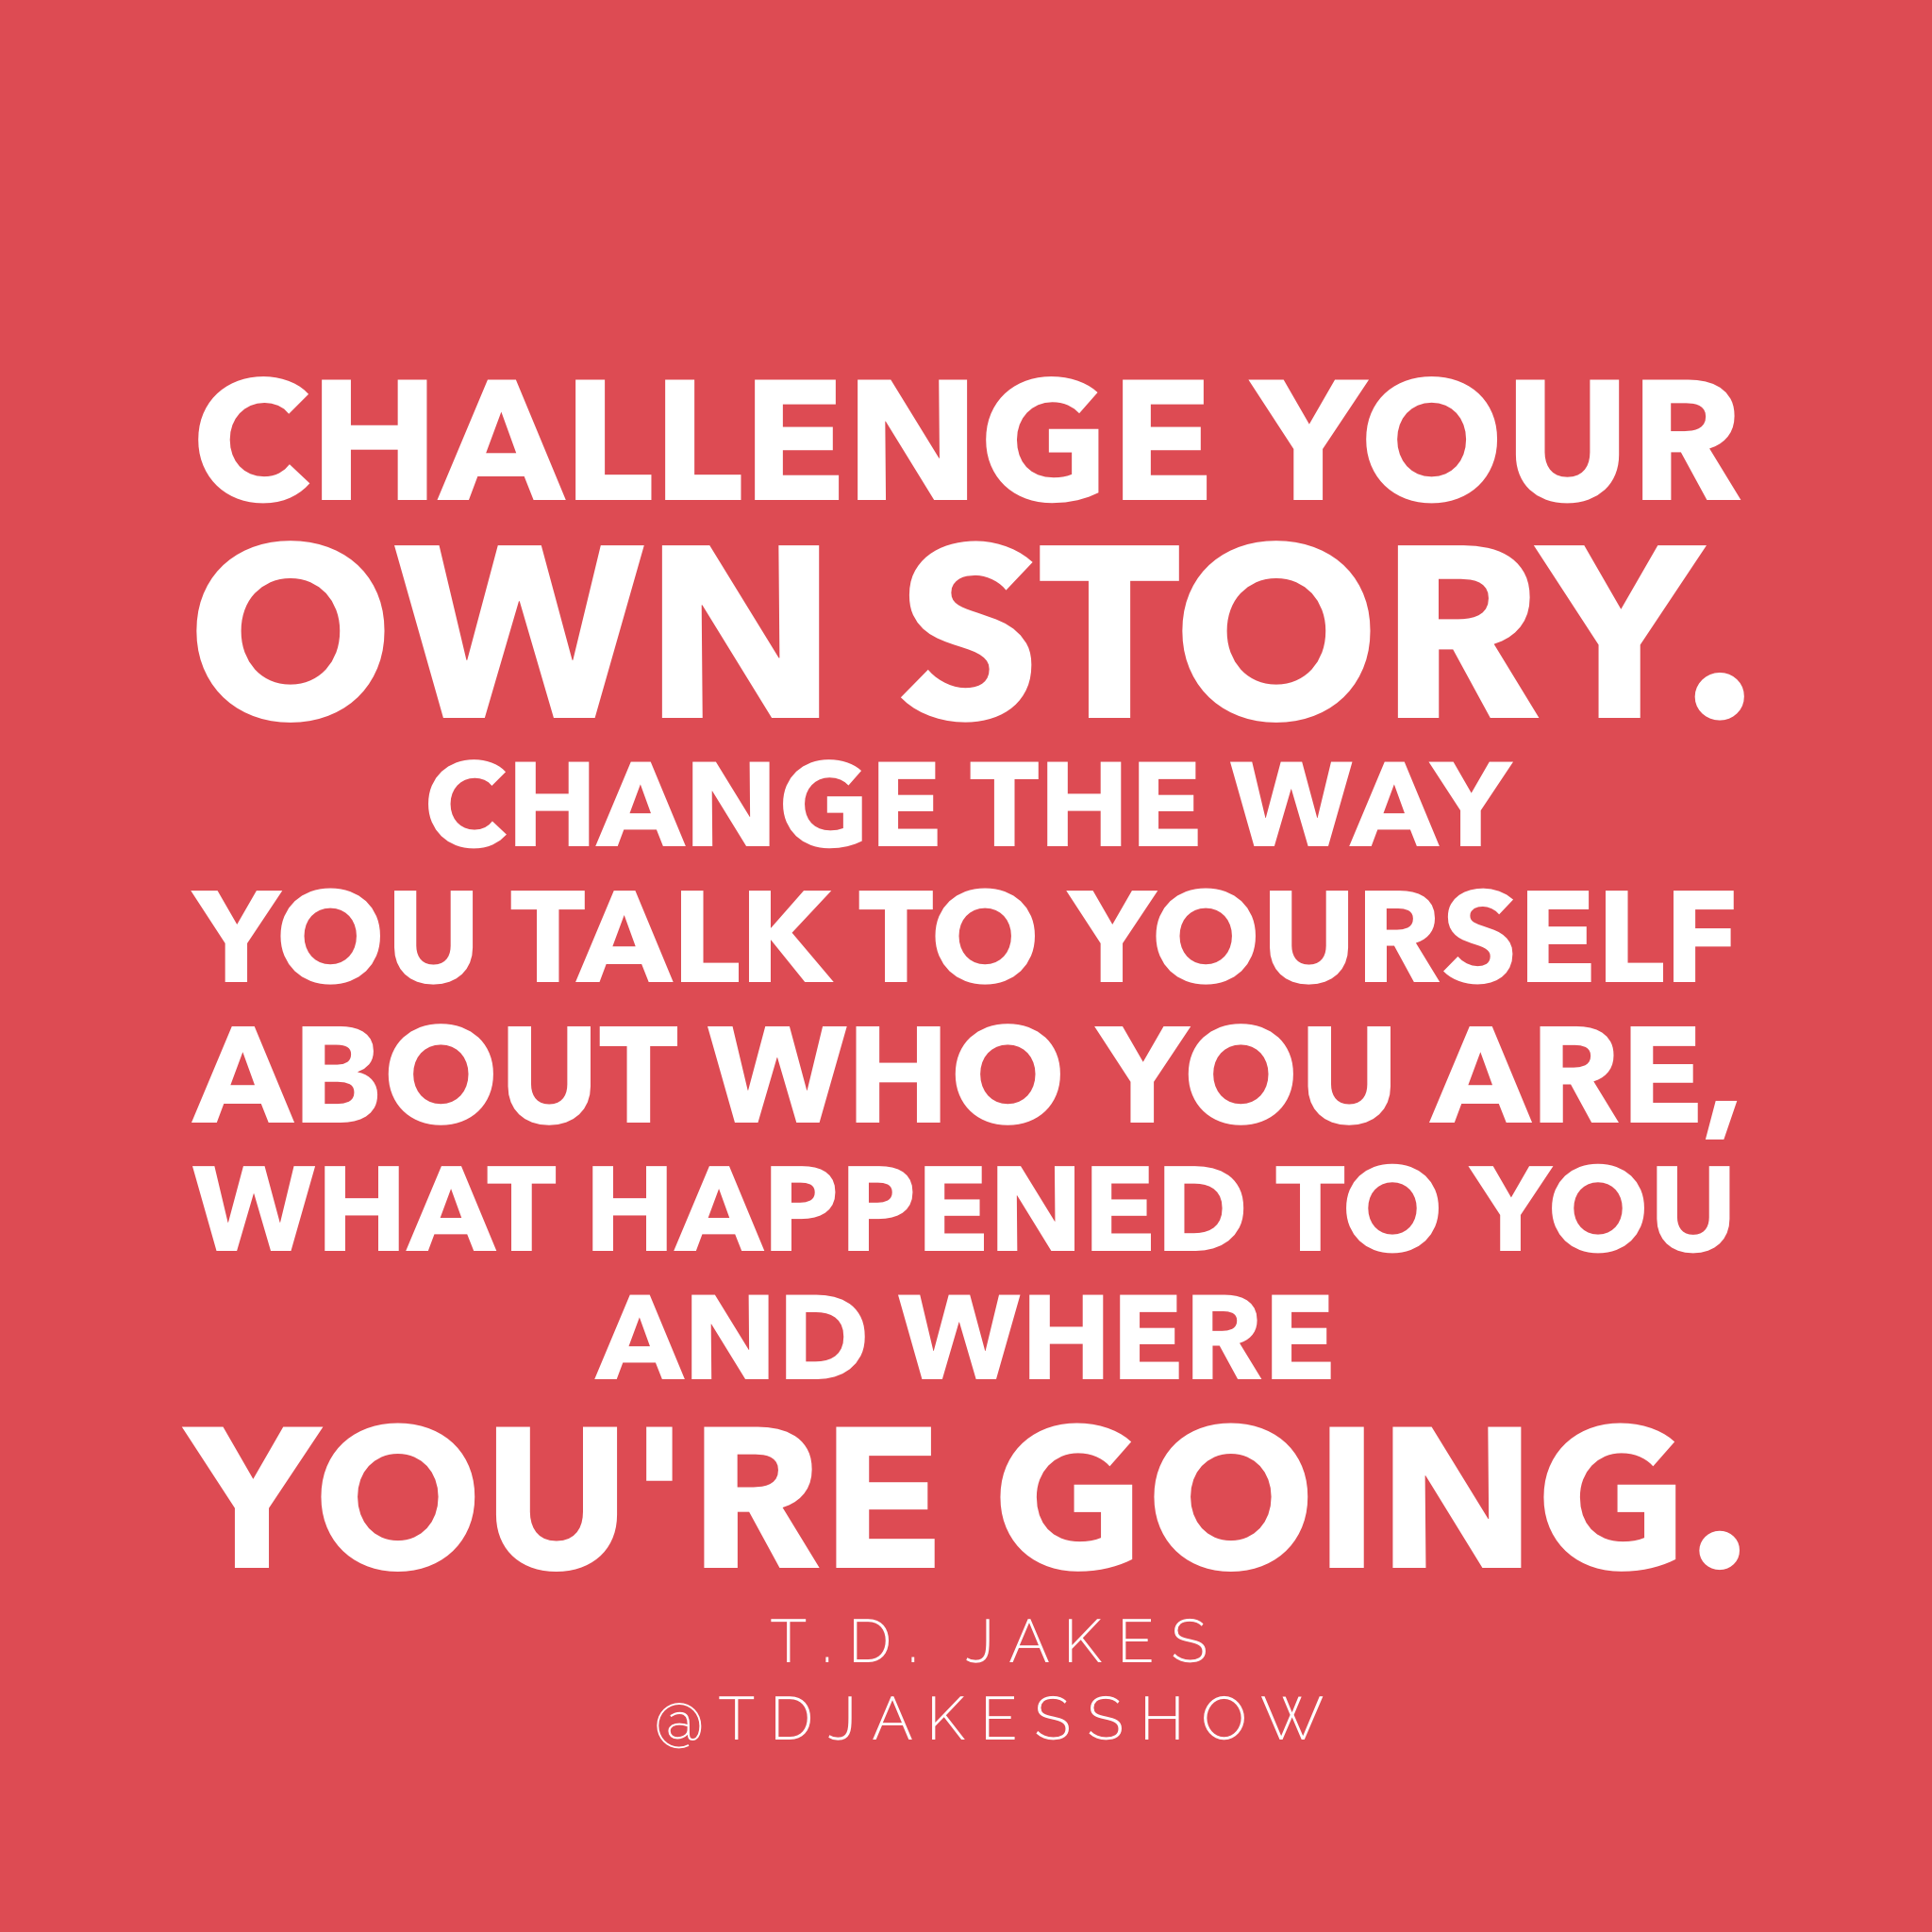 It's time for Tuesday T D  Jakes Challenge! Think you can do